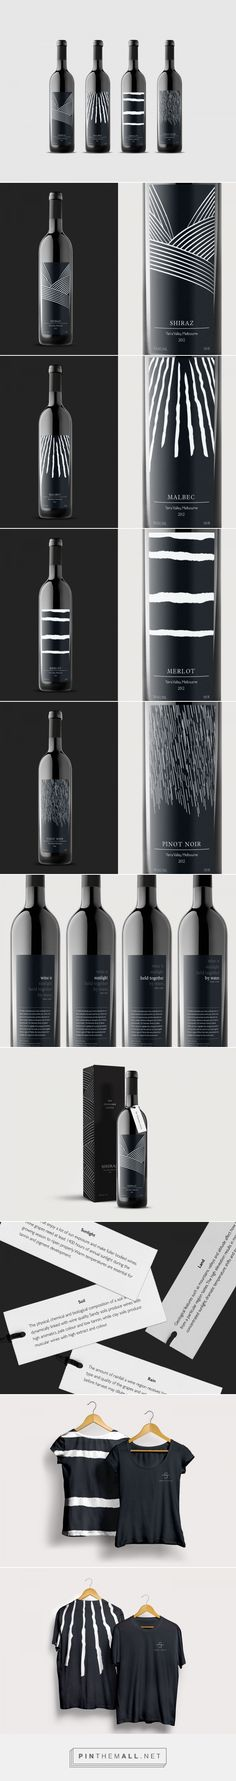 Land, Sunlight, Soil and Rain on The Elements Series wine label - student concept design by Dana Mevorach